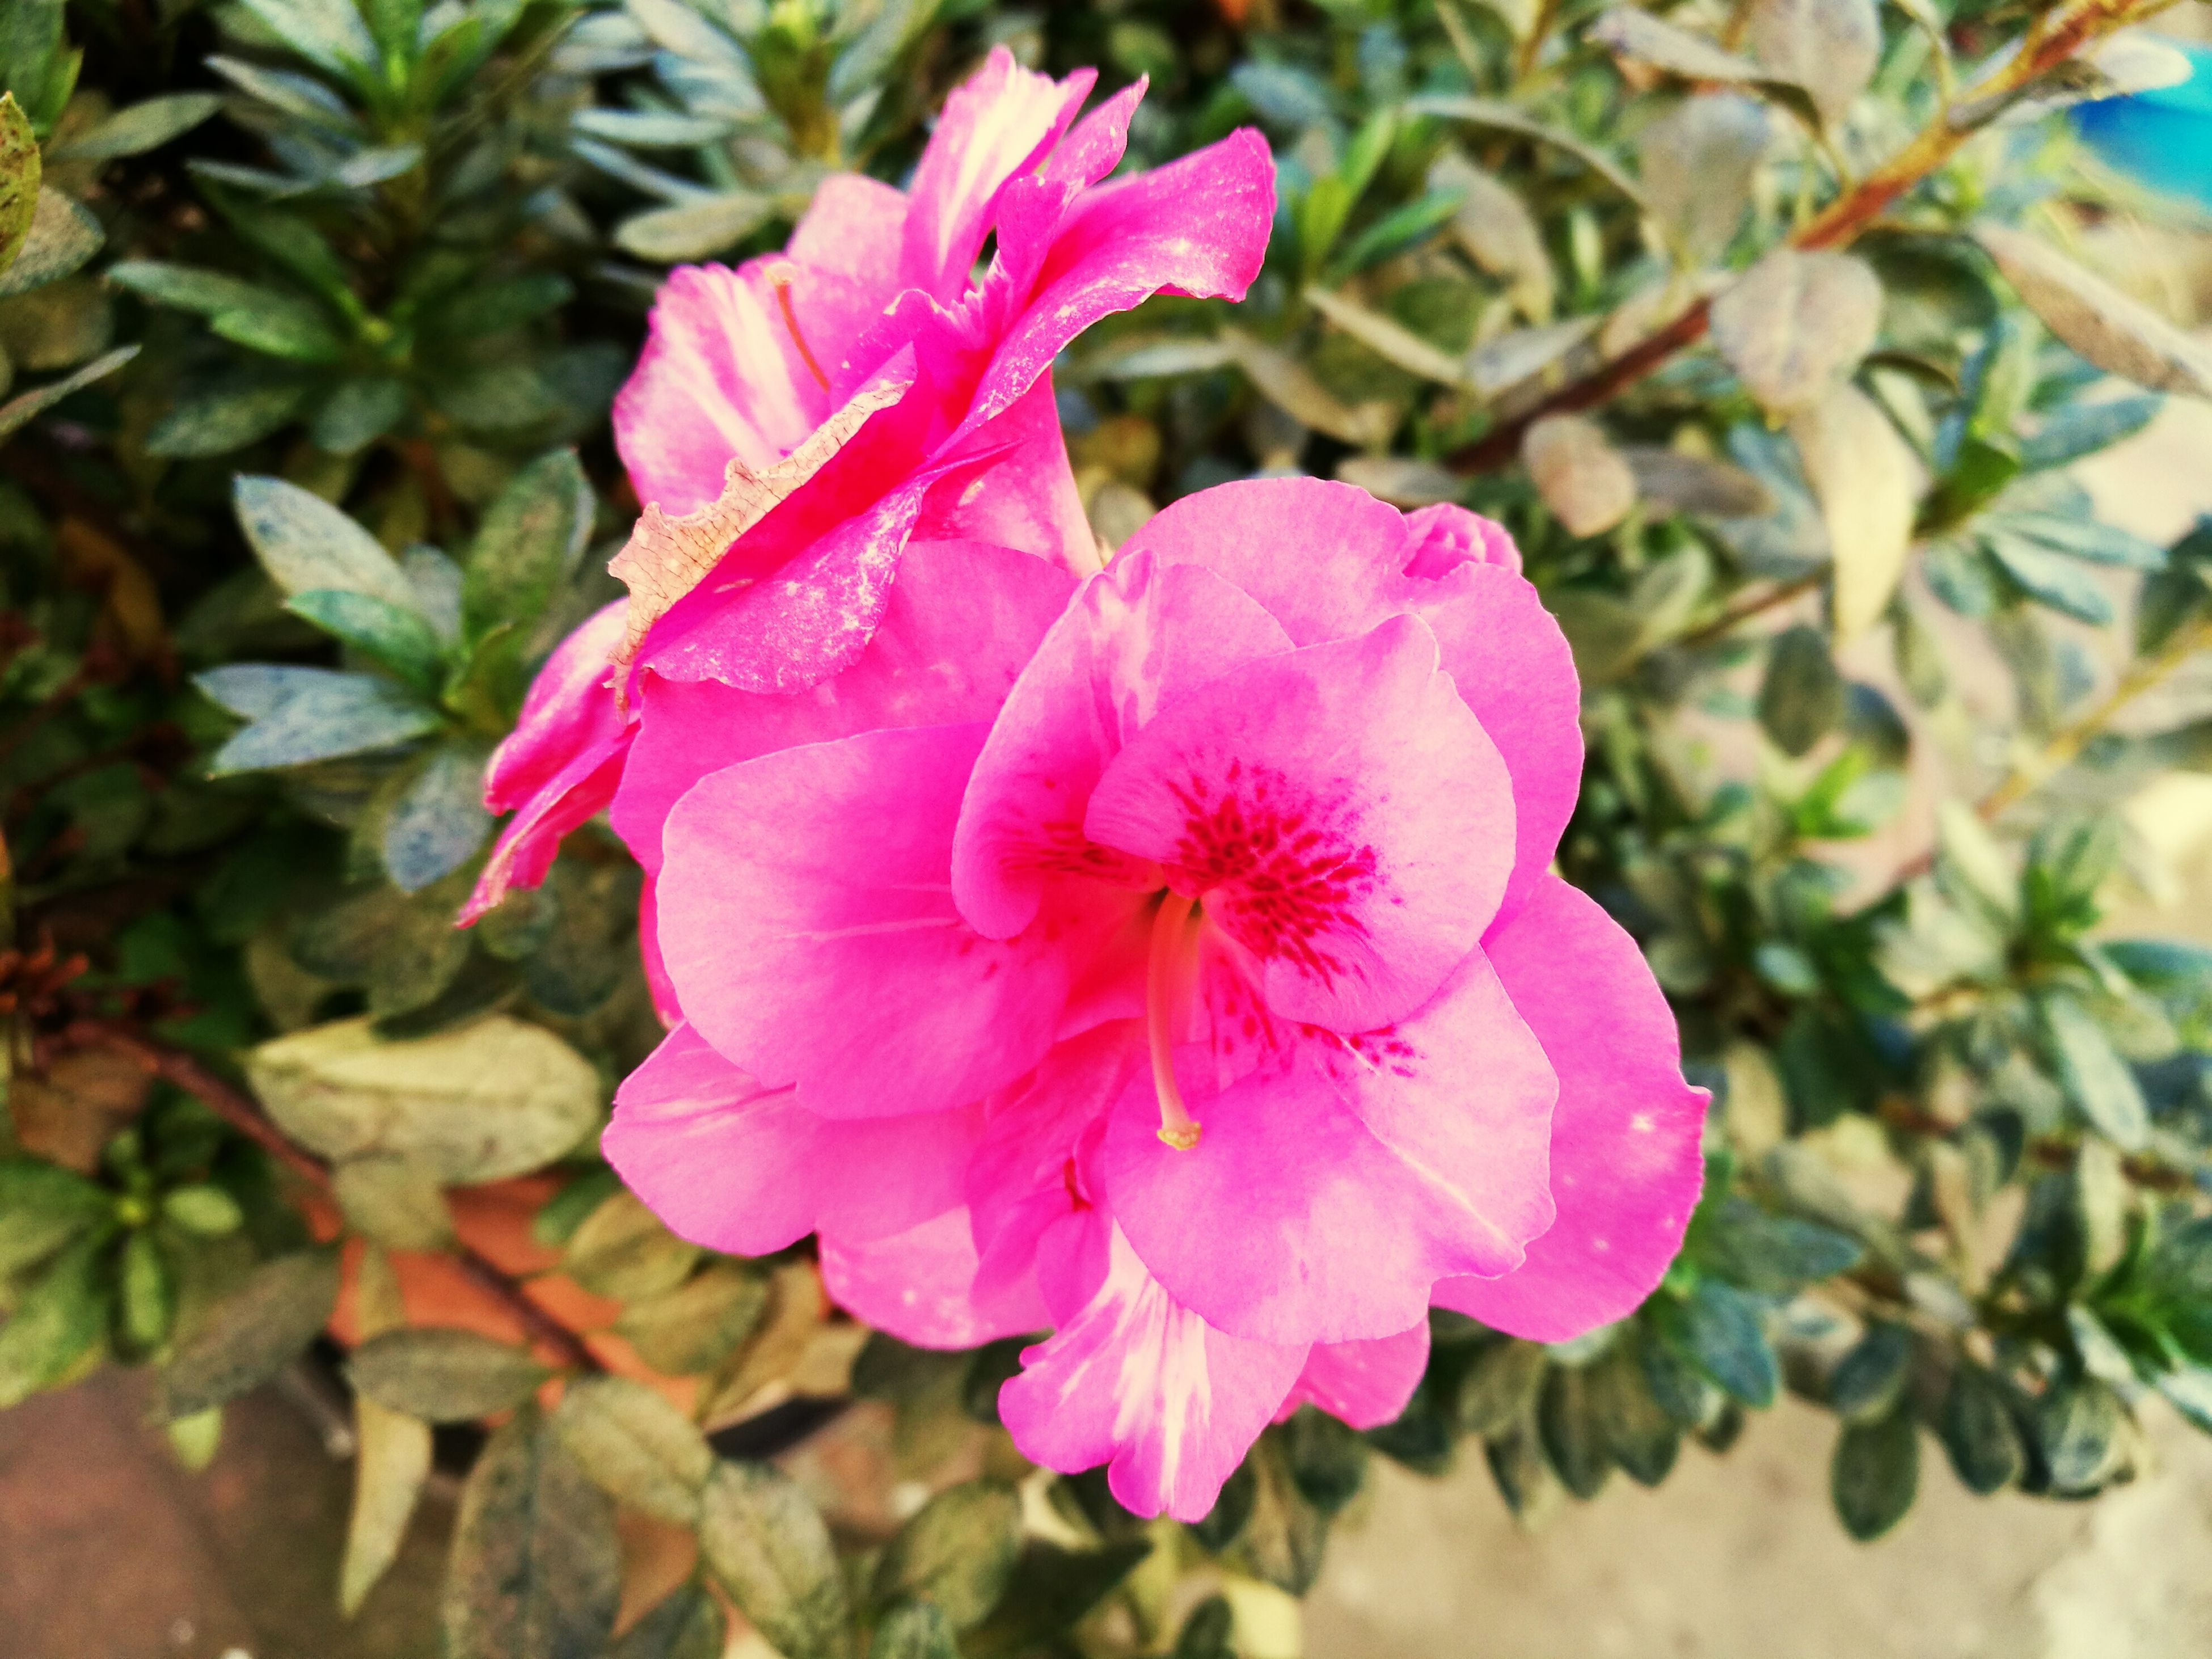 pink color, flower, petal, growth, nature, freshness, fragility, flower head, beauty in nature, plant, close-up, outdoors, blooming, no people, rhododendron, day, pistil